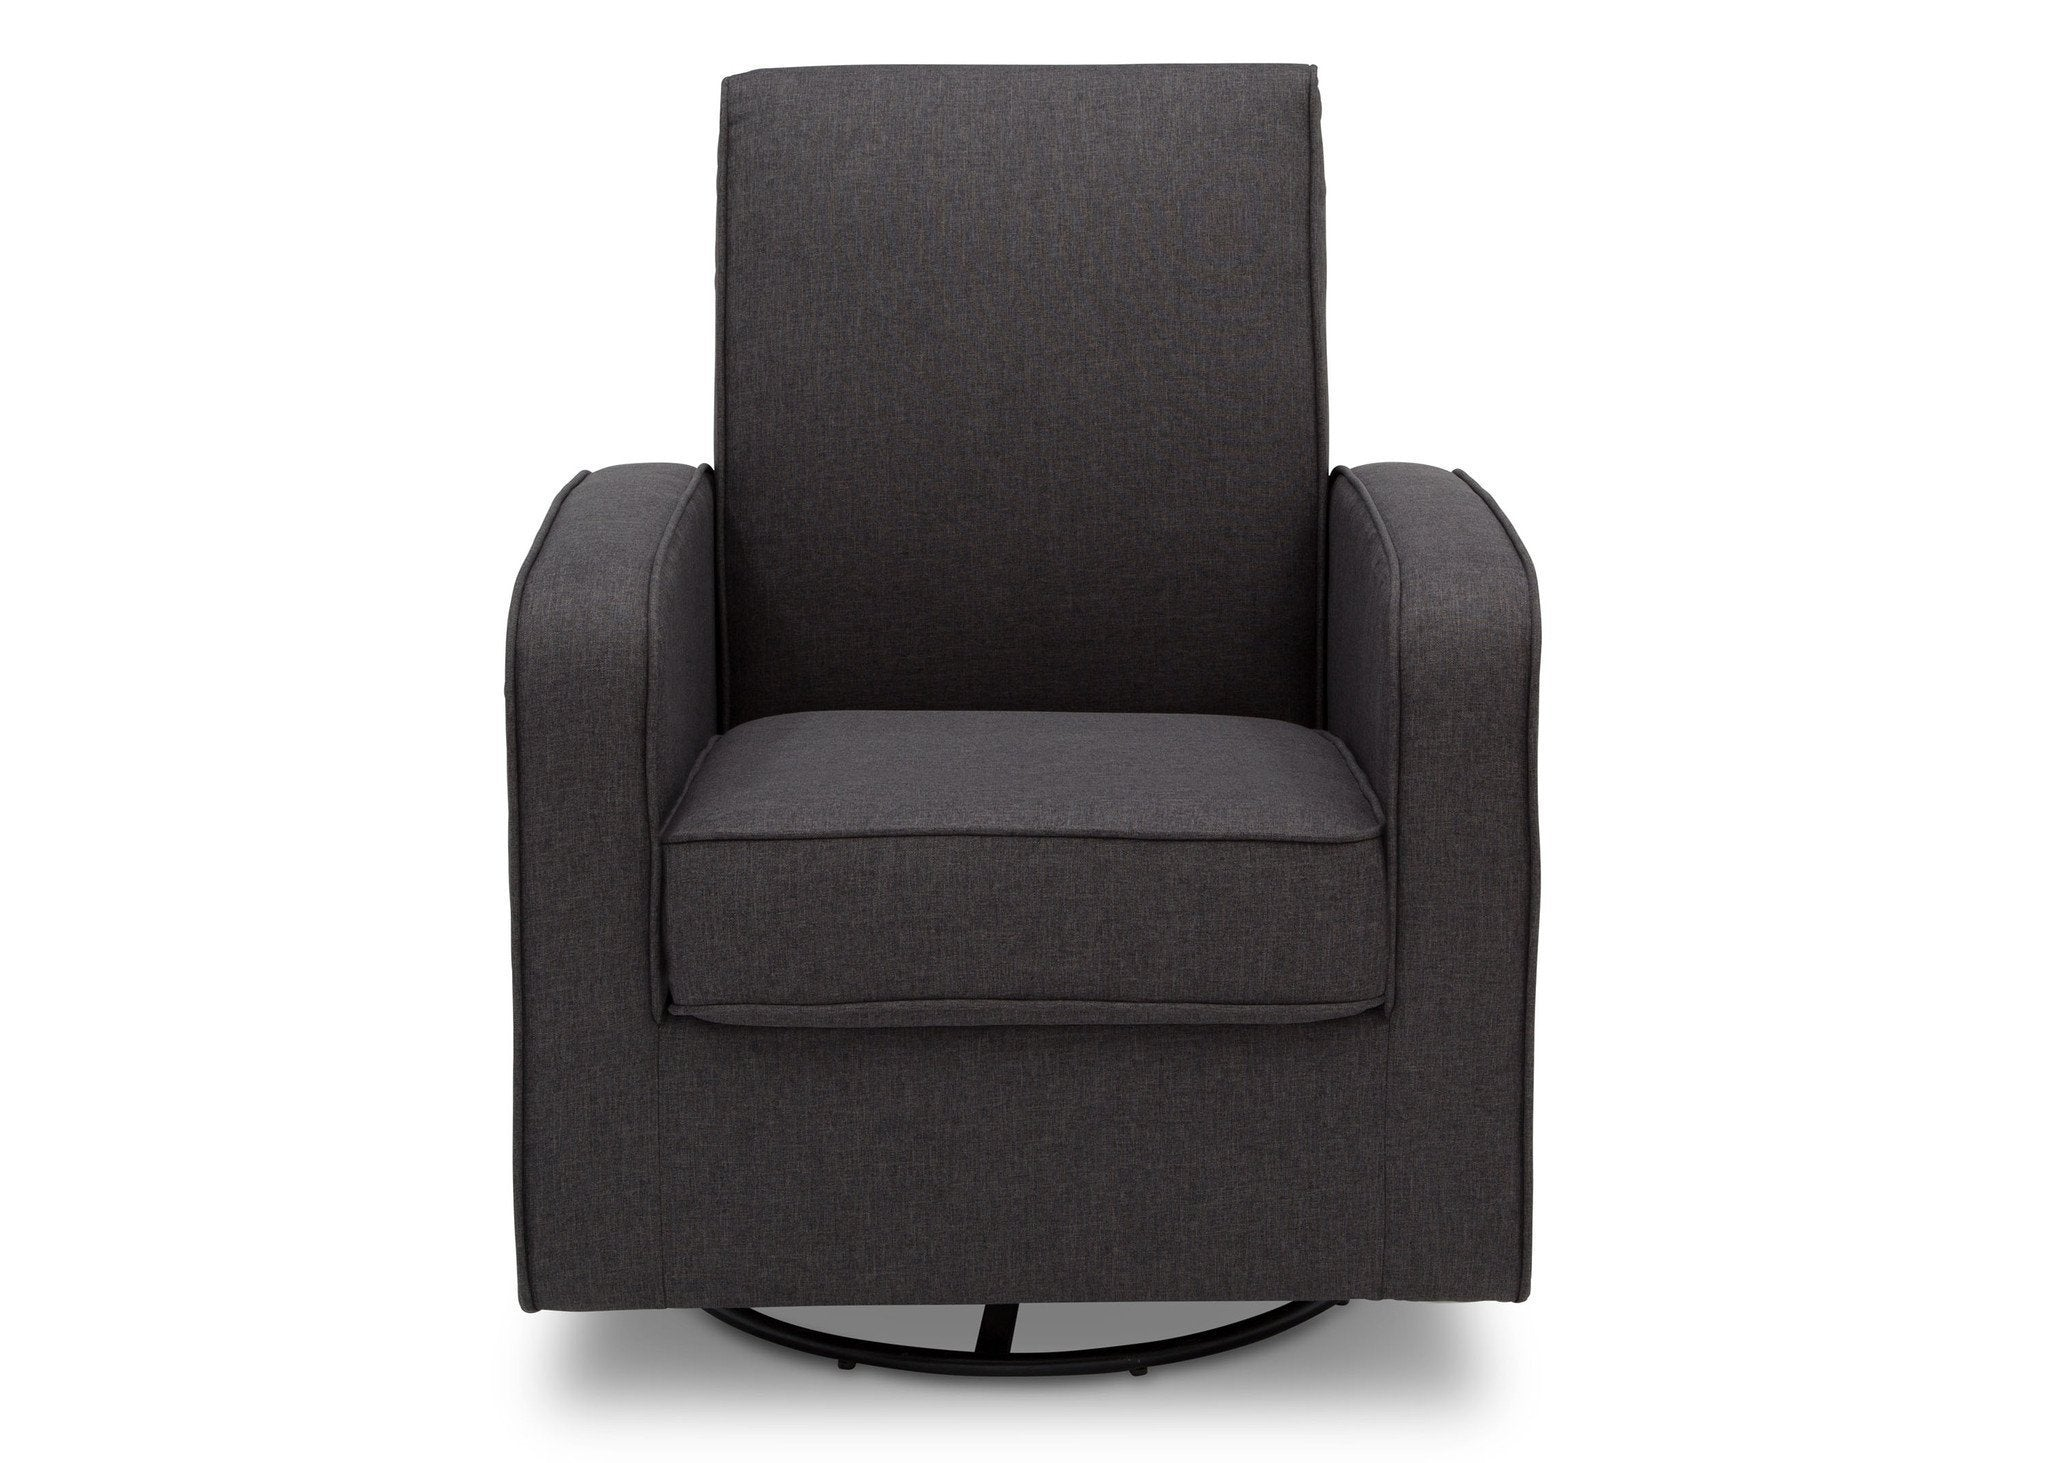 Delta Children Charcoal (931) Charlotte Nursery Glider Swivel Rocker Chair, front view, c2c